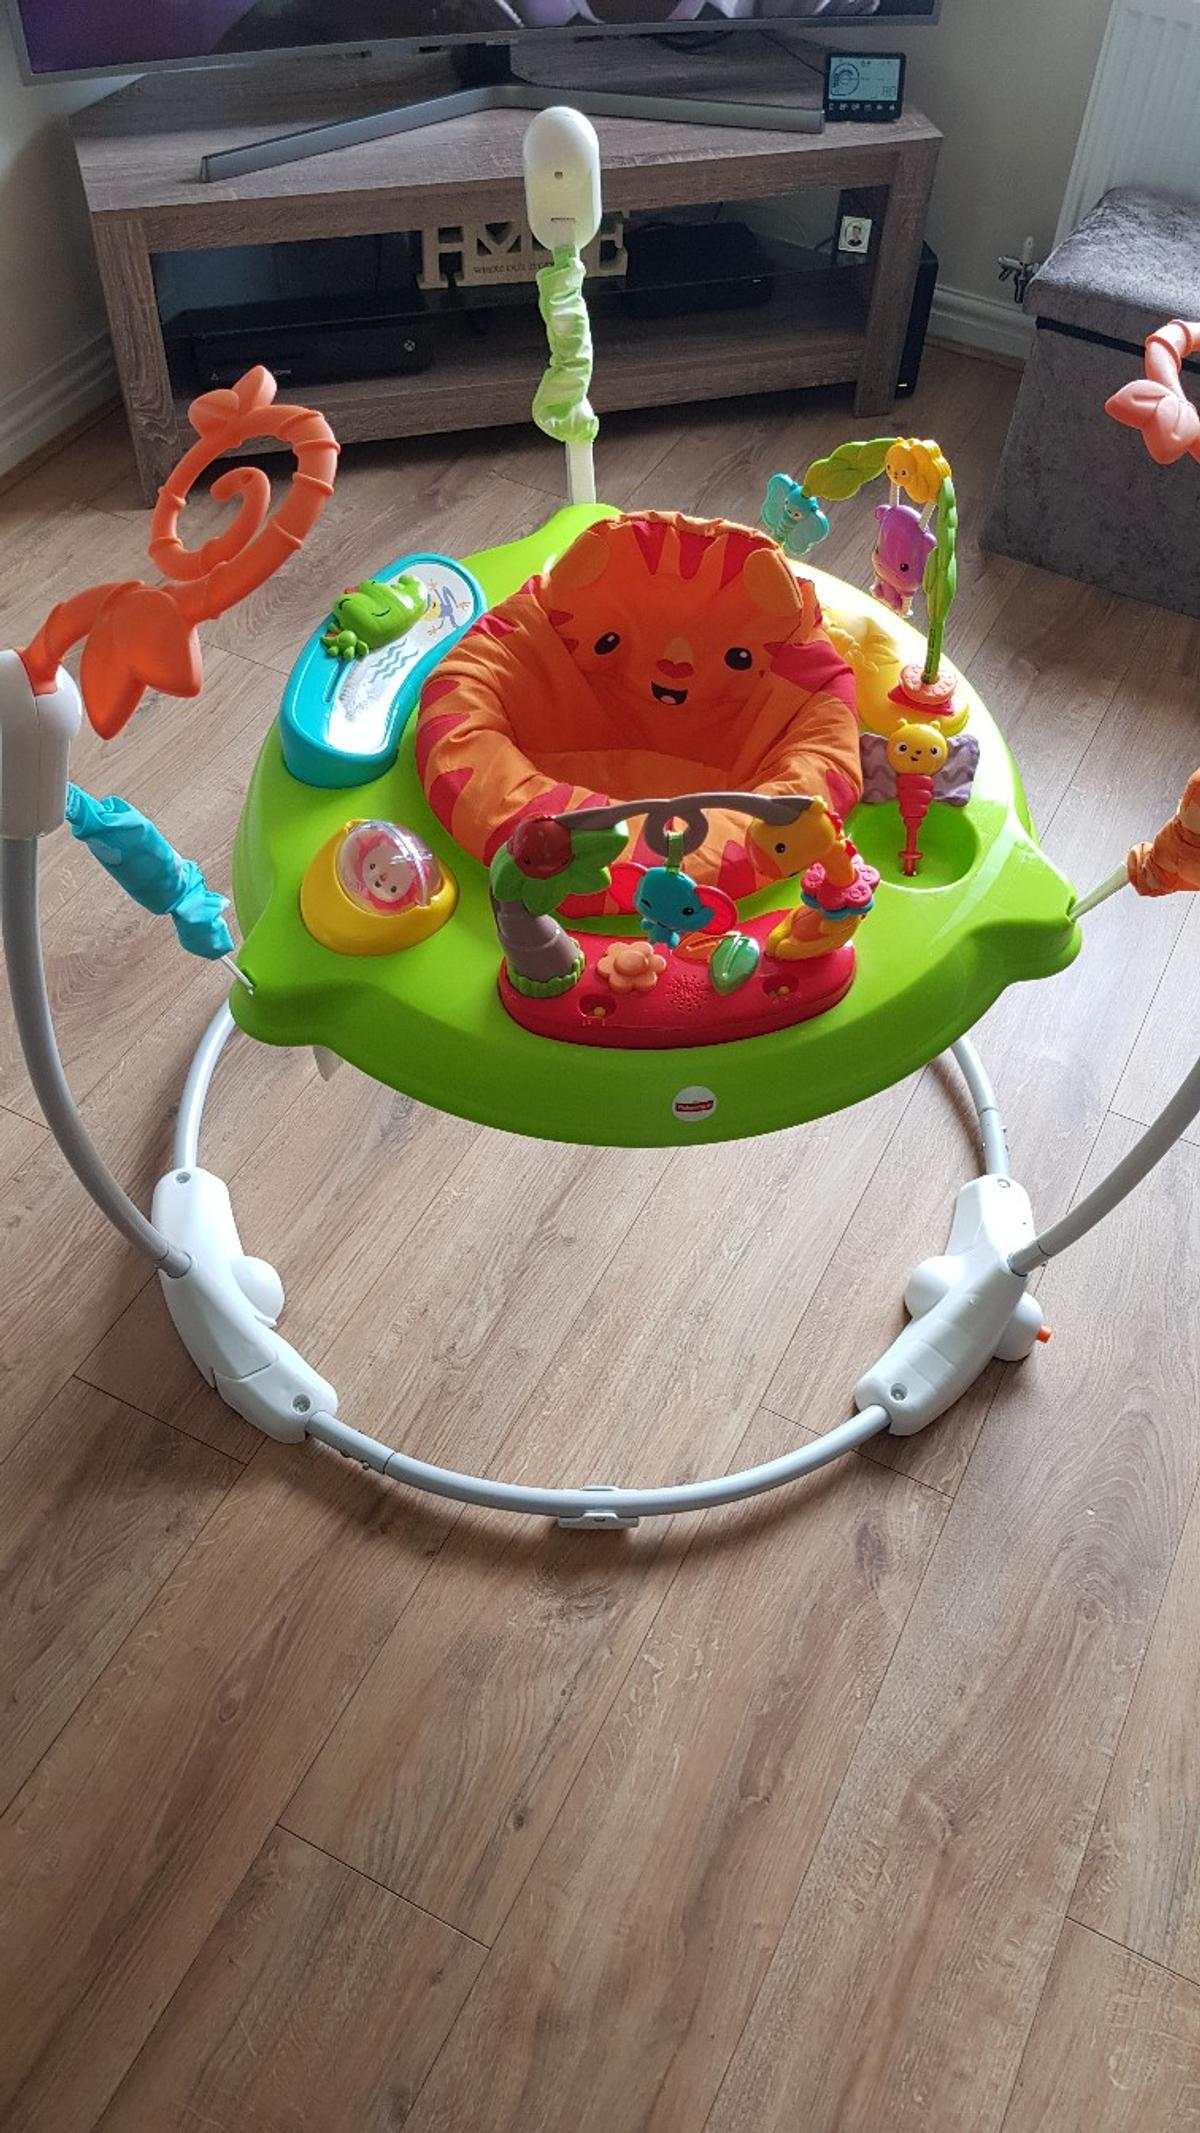 Jumparoo in good condition, no longer needed as little one has outgrown it.